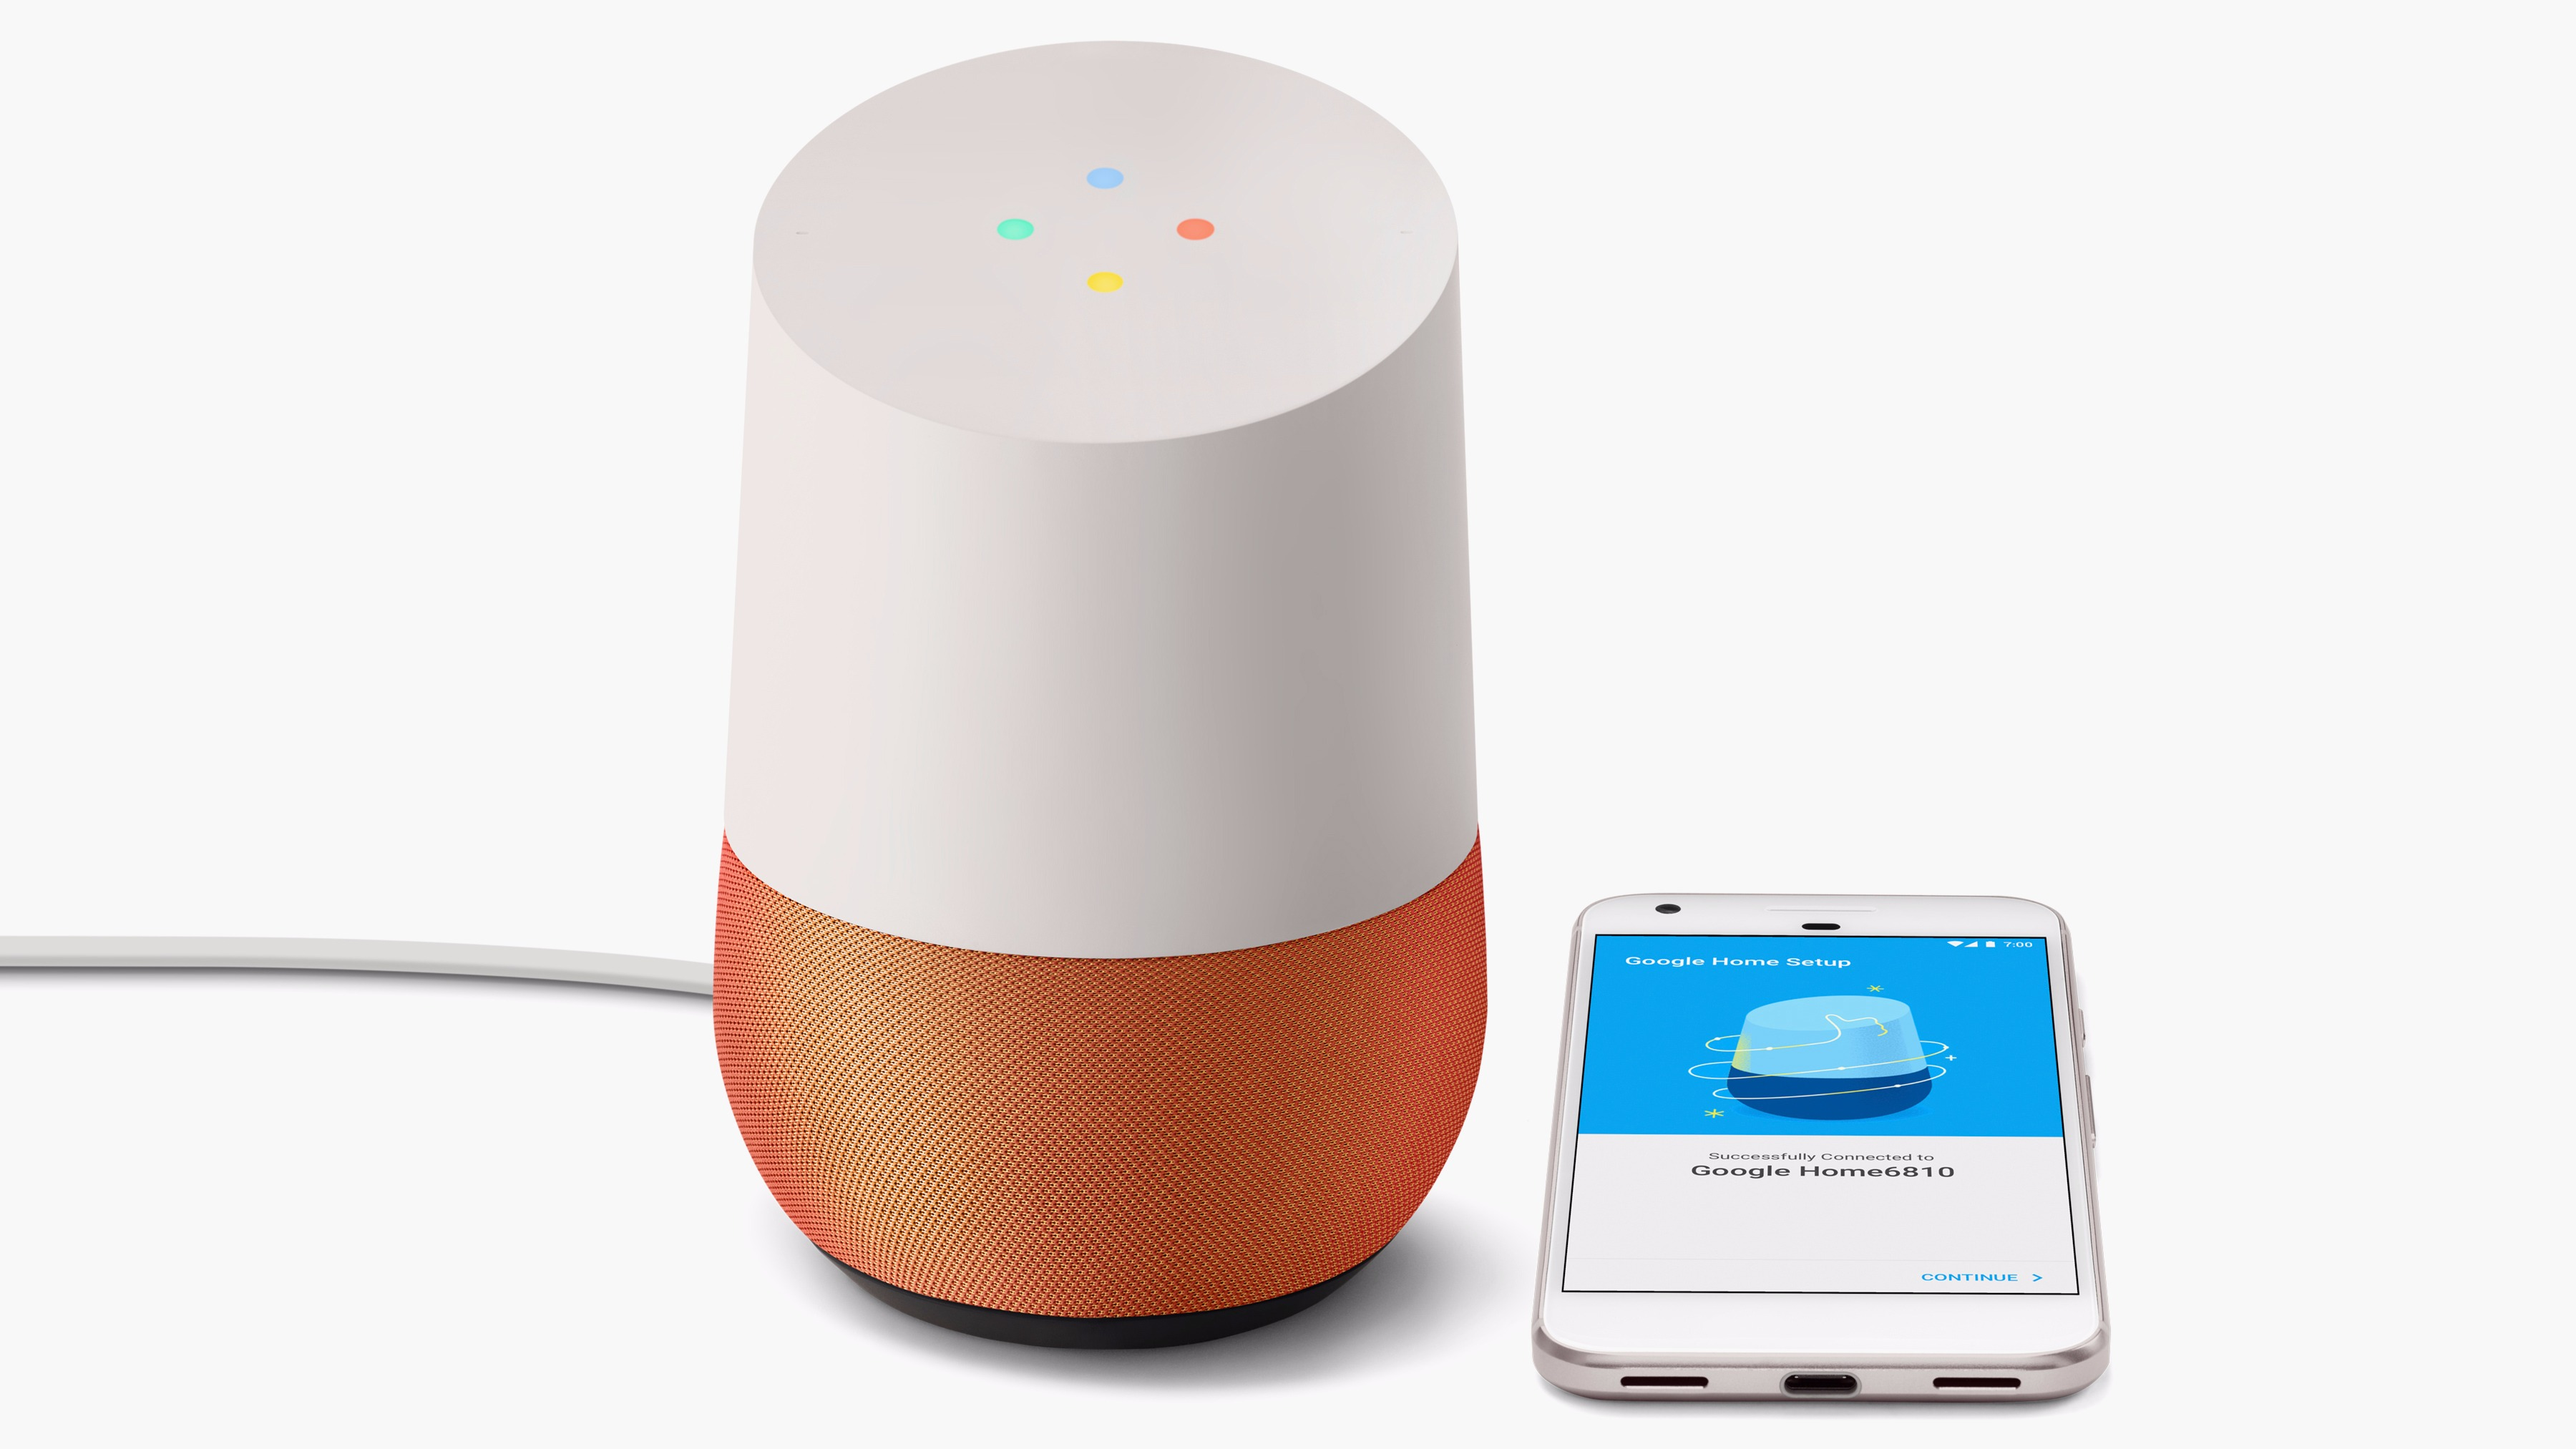 Google Home and Google Pixel